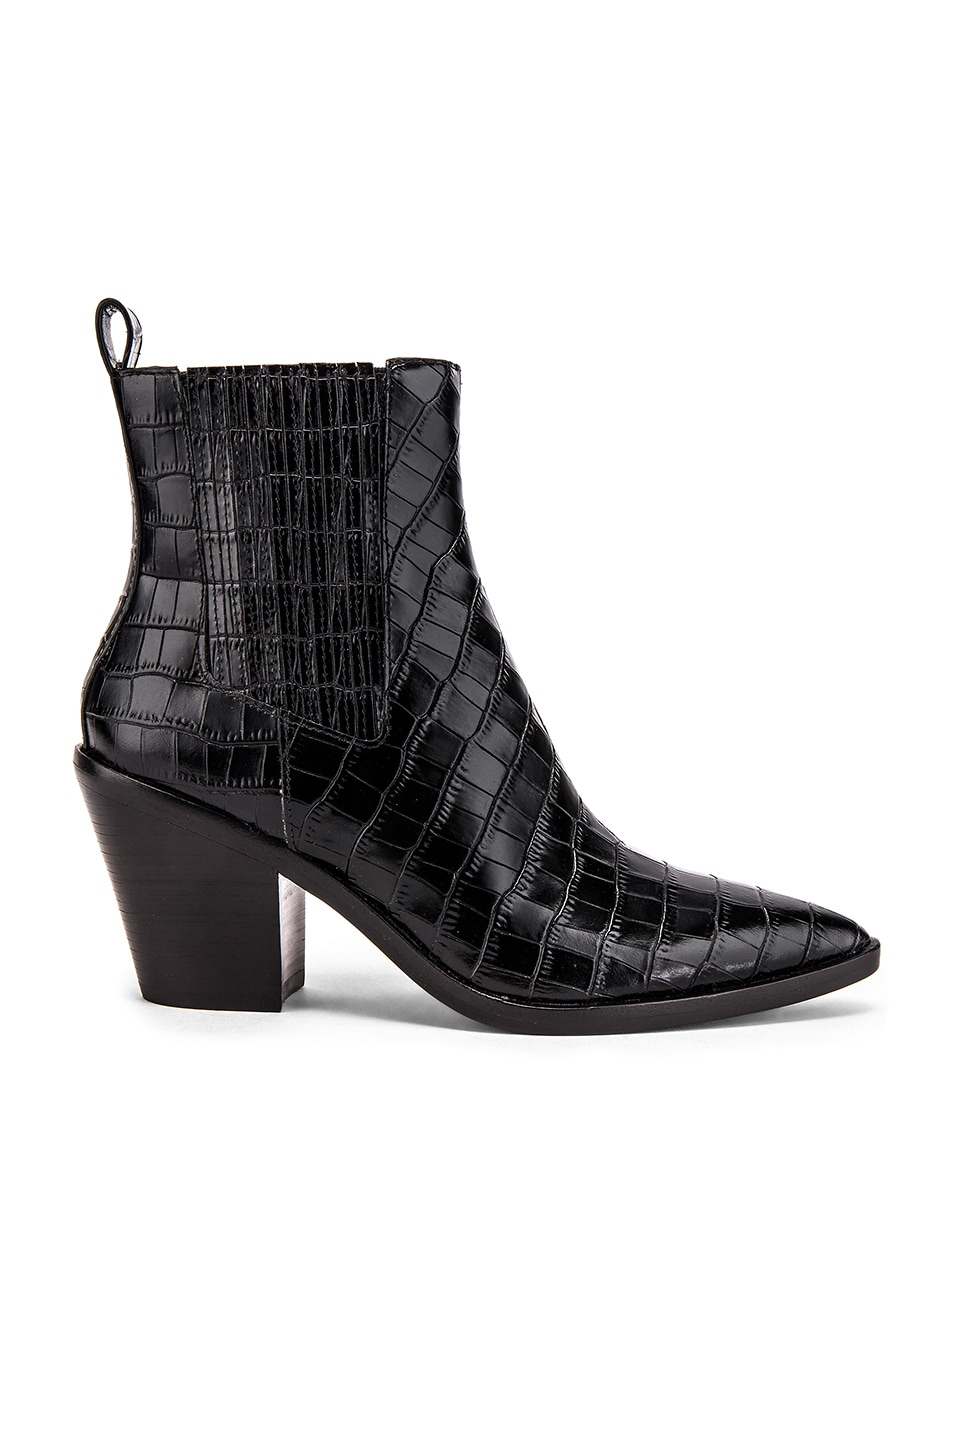 Alice + Olivia Westra Bootie in Black